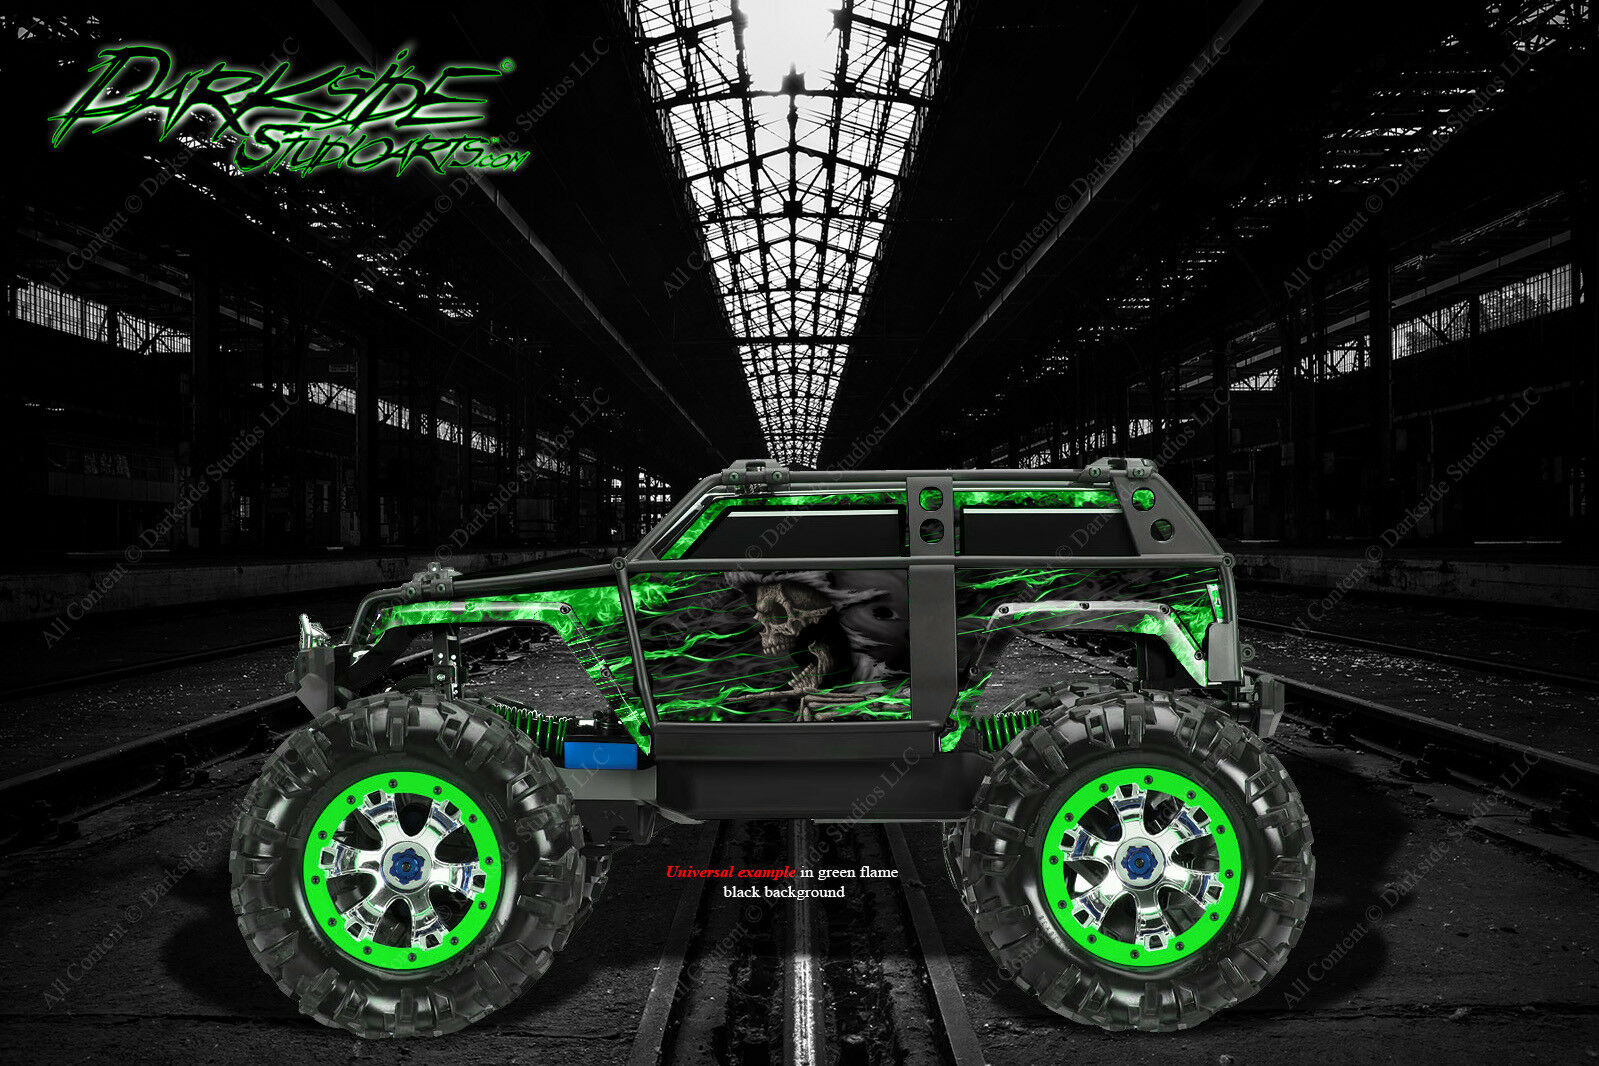 TRAXXAS SUMMIT  GRAPHICS WRAP DECALS  HELL RIDE  FOR OEM corpo PARTS verde FLAME  solo per te